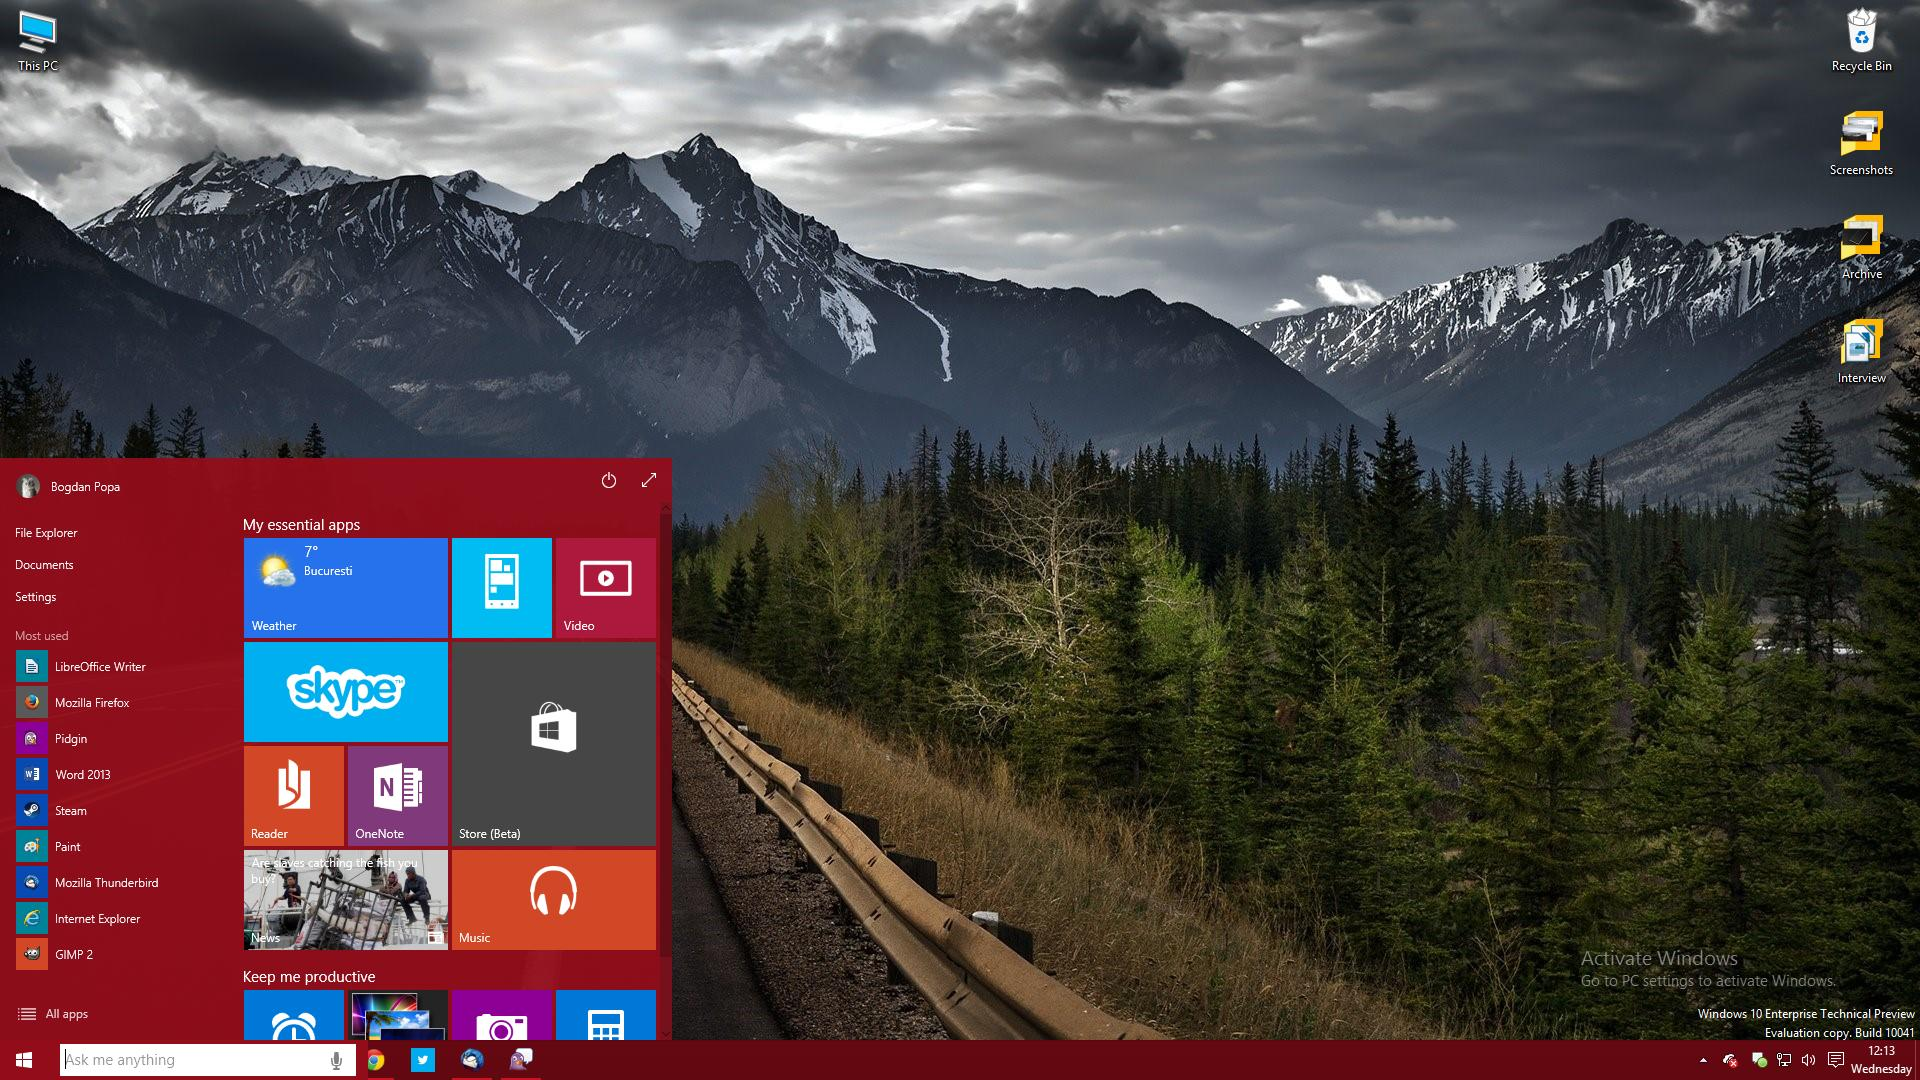 Windows 10 build 10041 isos now available for download windows 10 desktop windows 10 build 10041 ccuart Image collections